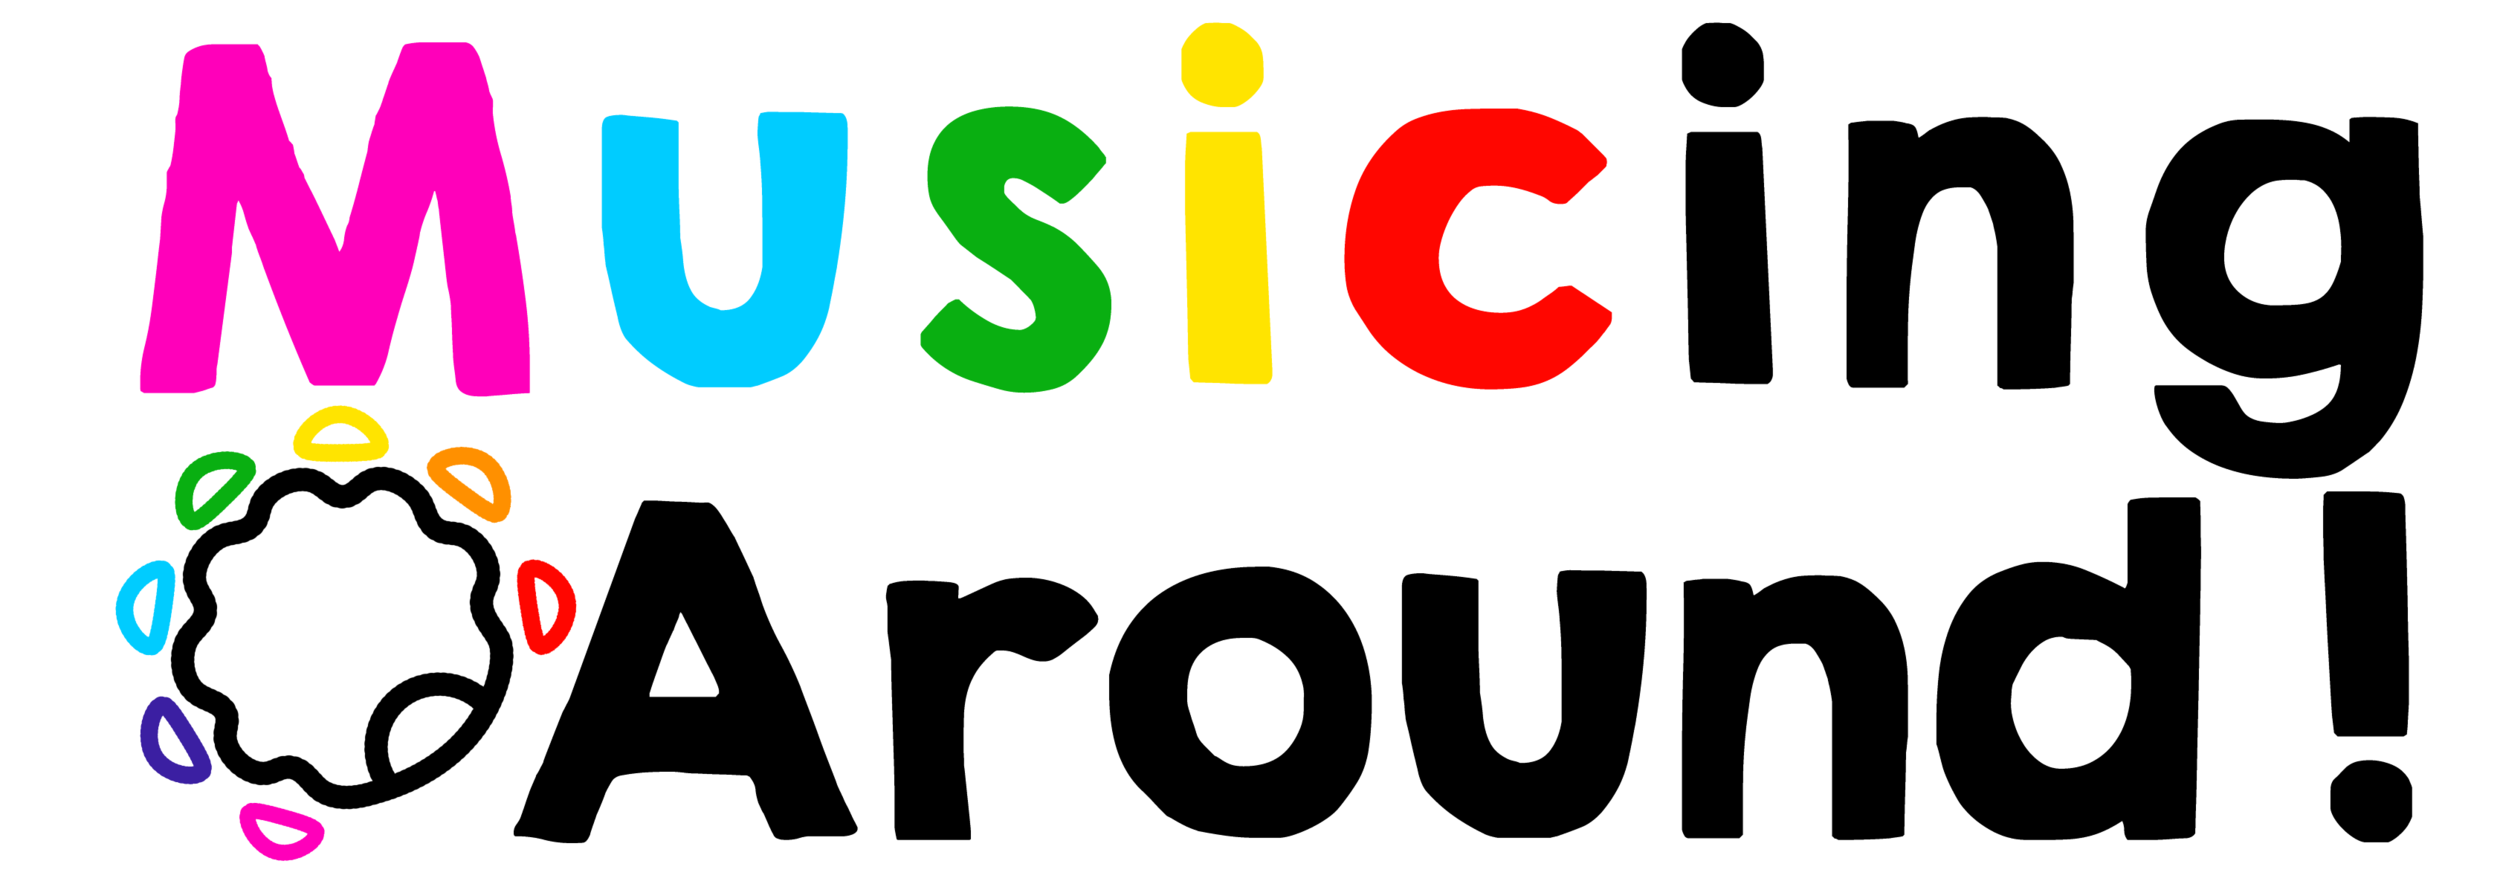 Musicing Around is underway with a range of events and concerts coming up at schools across the city.    Check back soon to find out more.